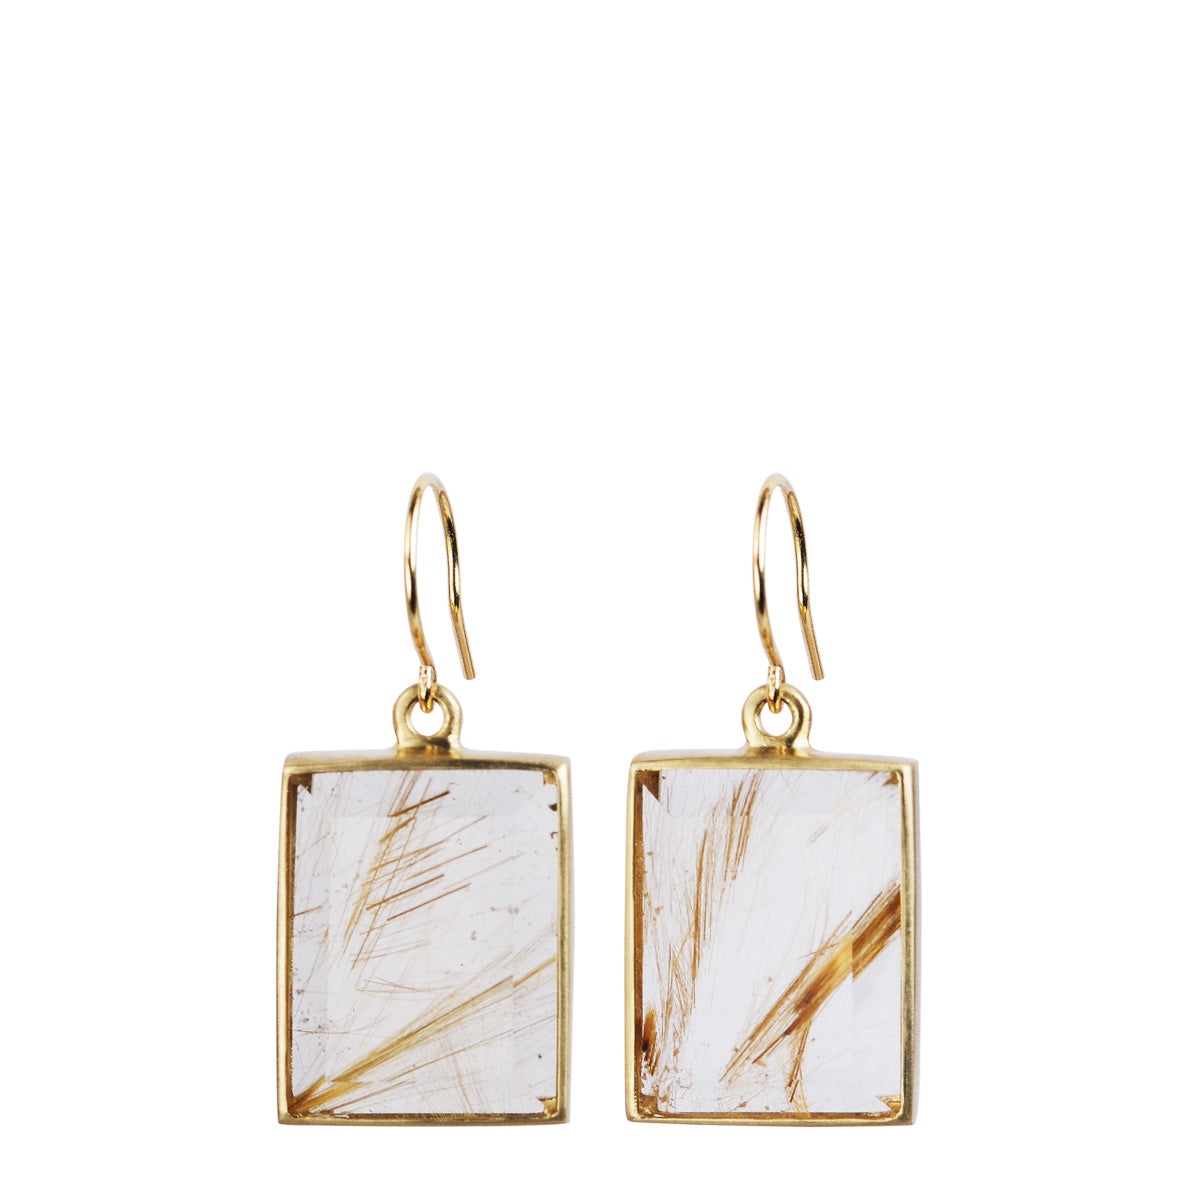 10K Gold Large Emerald Cut Rutilated Quartz Earrings